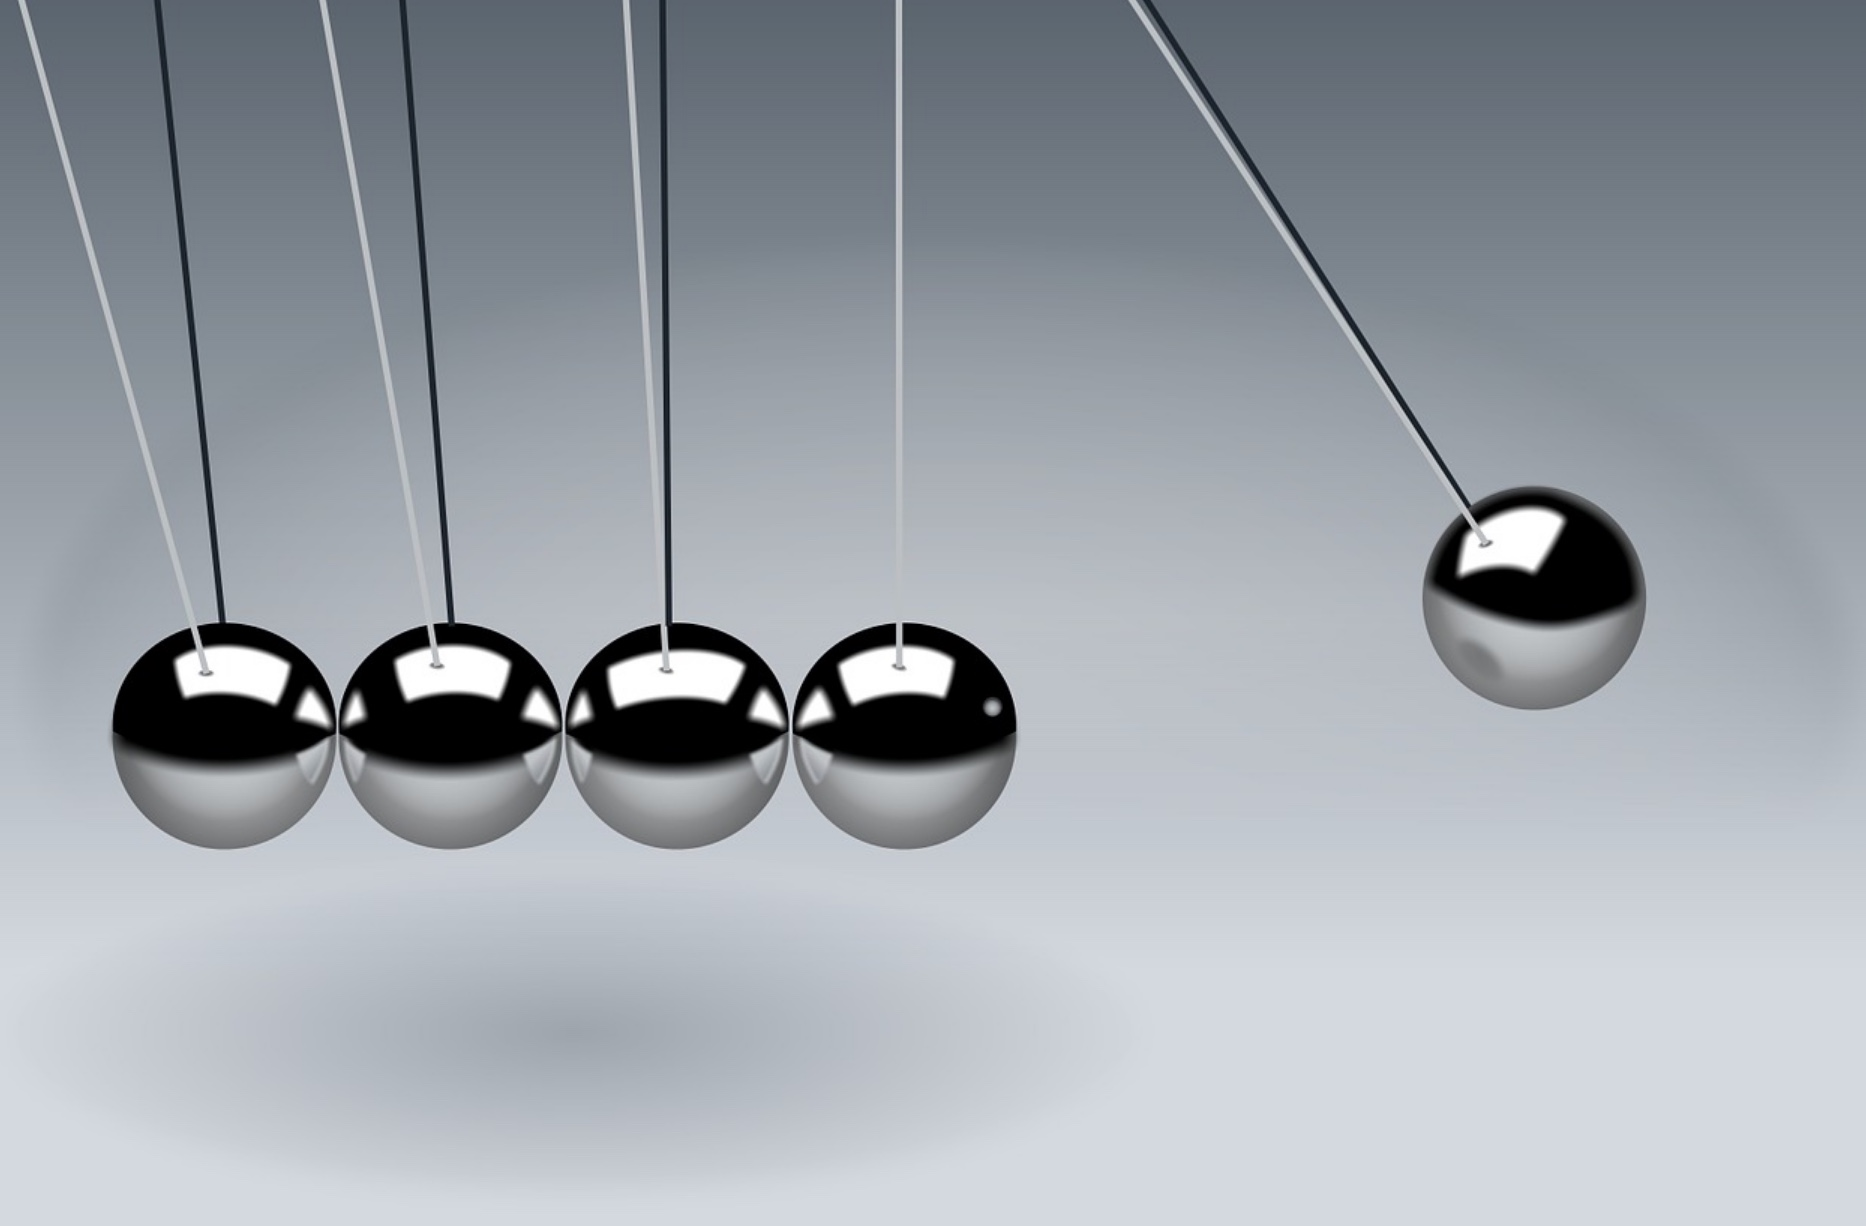 Newton's Cradle, find executive coaching in Nashville, TN, executive training with Agility Leadership.